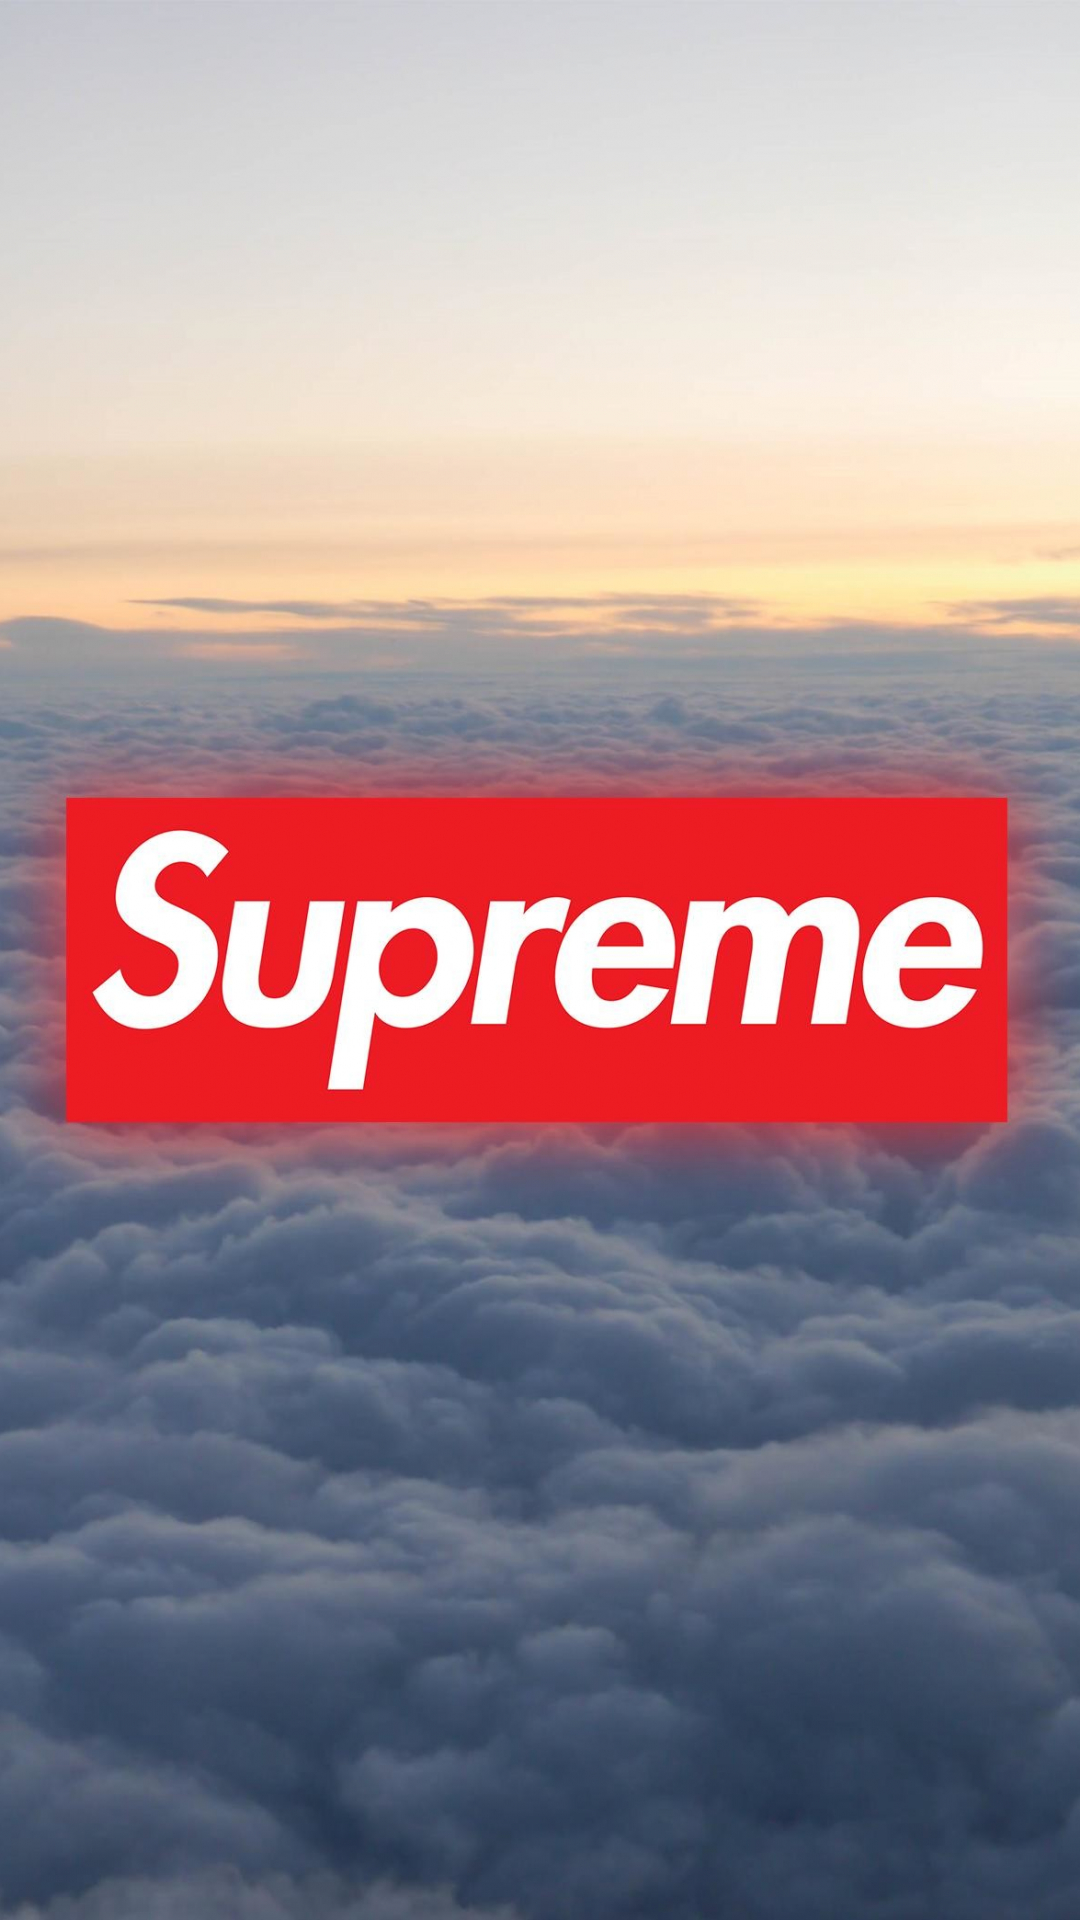 Free download 83 Supreme Wallpapers on WallpaperPlay ...